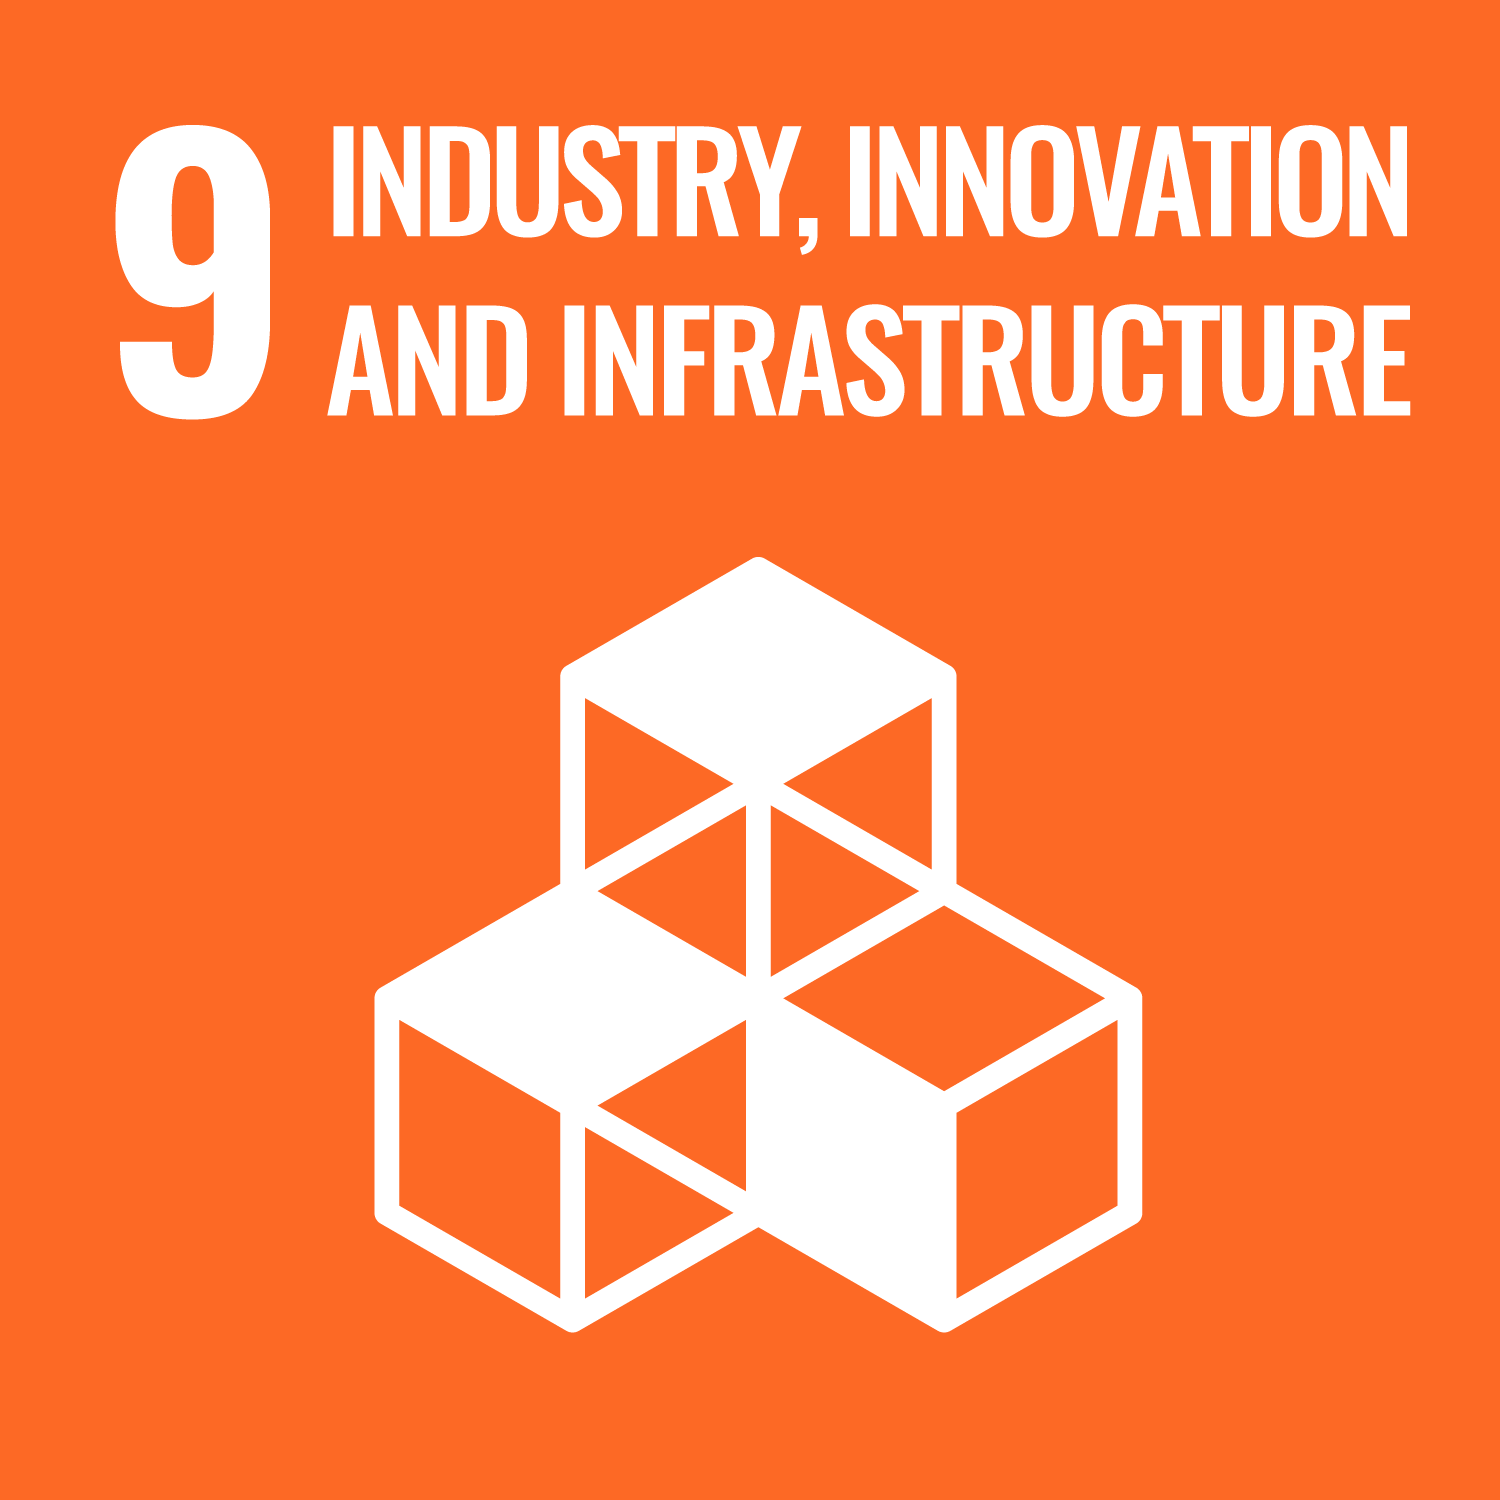 Goal 9: Industry, information, and infrastructure